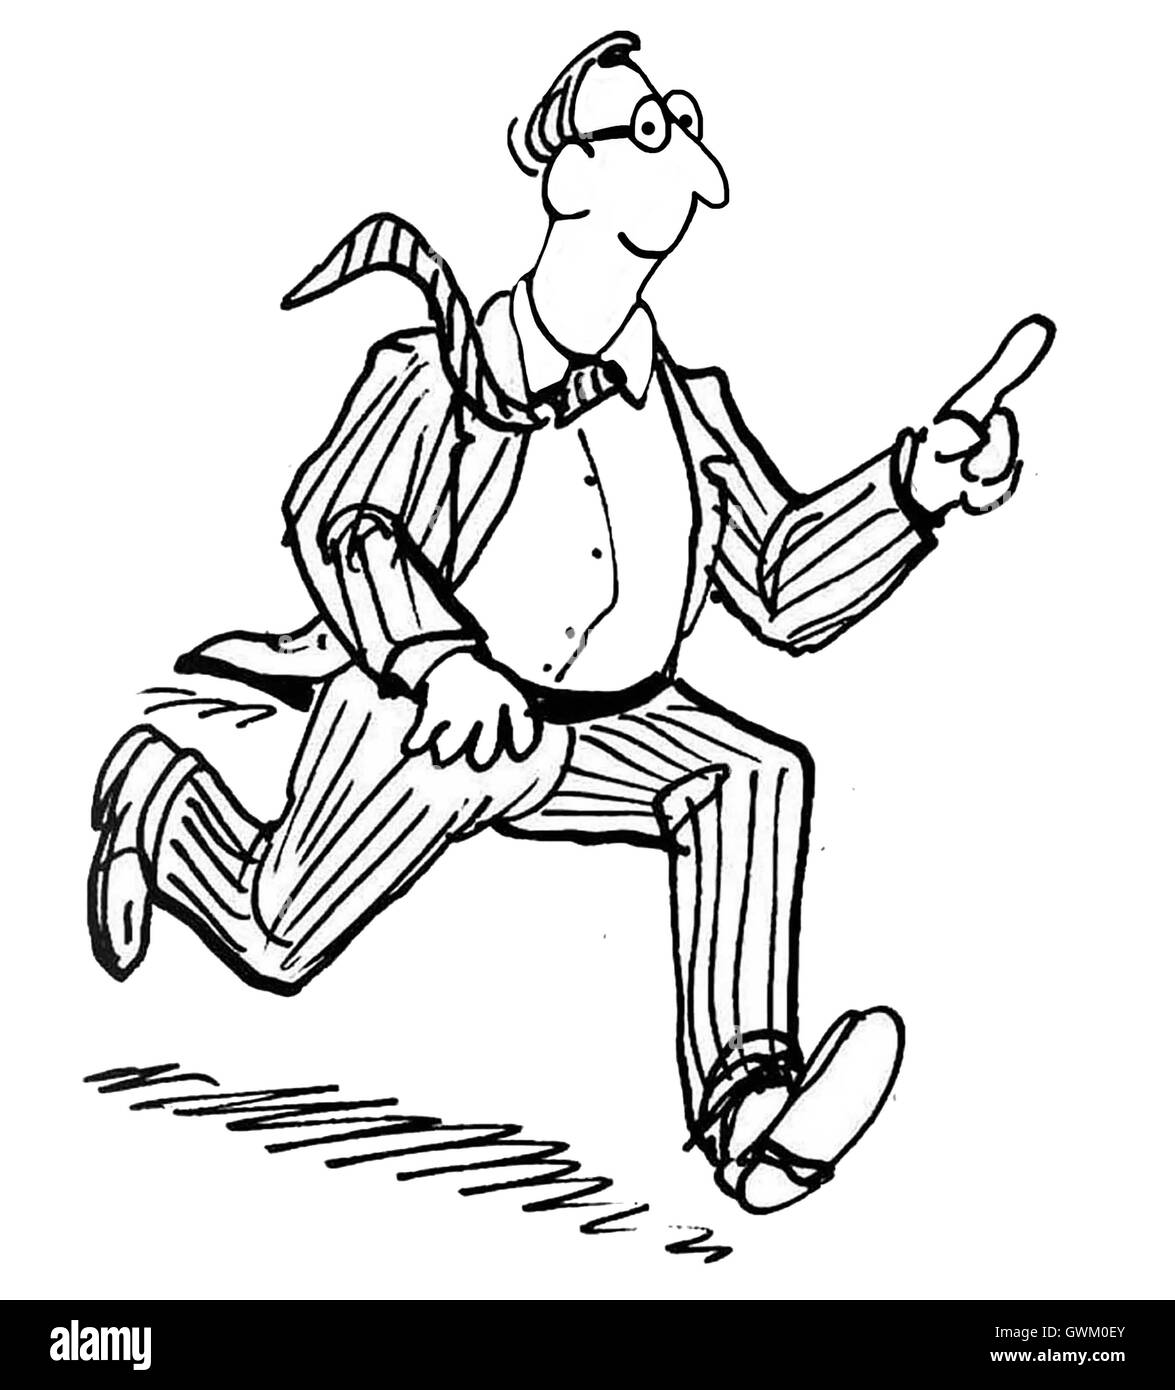 B&W business illustration of a smiling businessman running and pointing a finger to the distance. - Stock Image